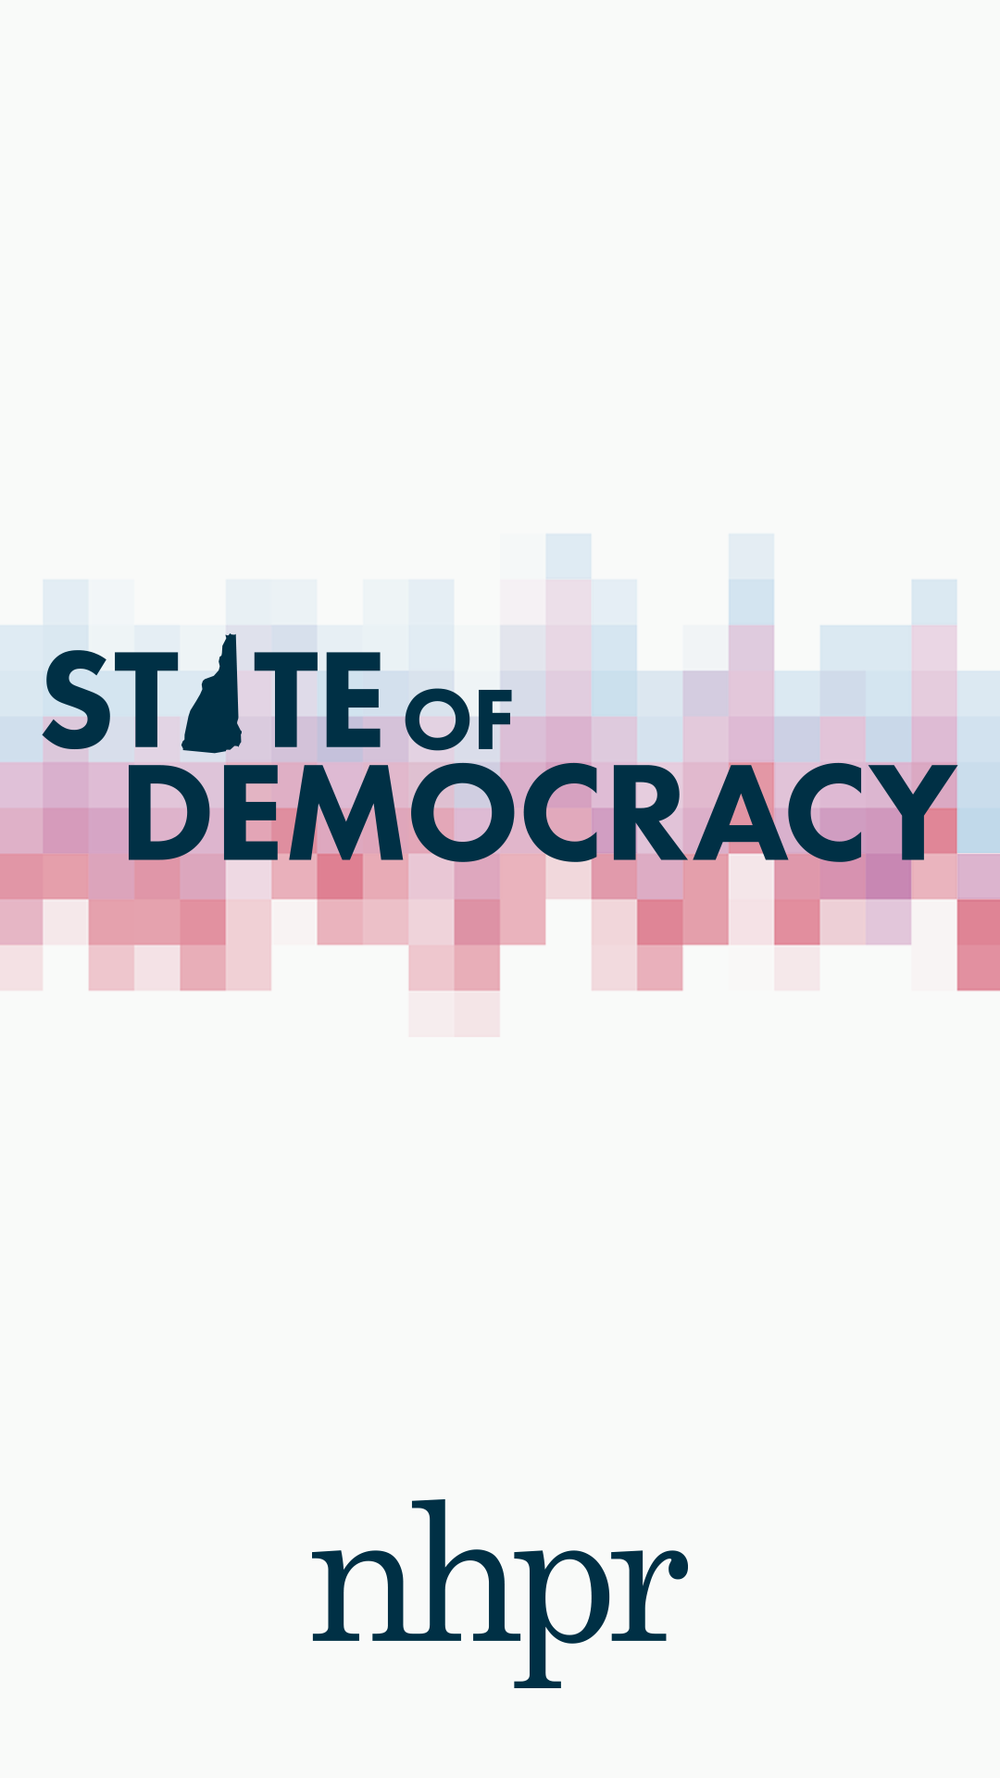 StateOfDemocracy_AppHome.png